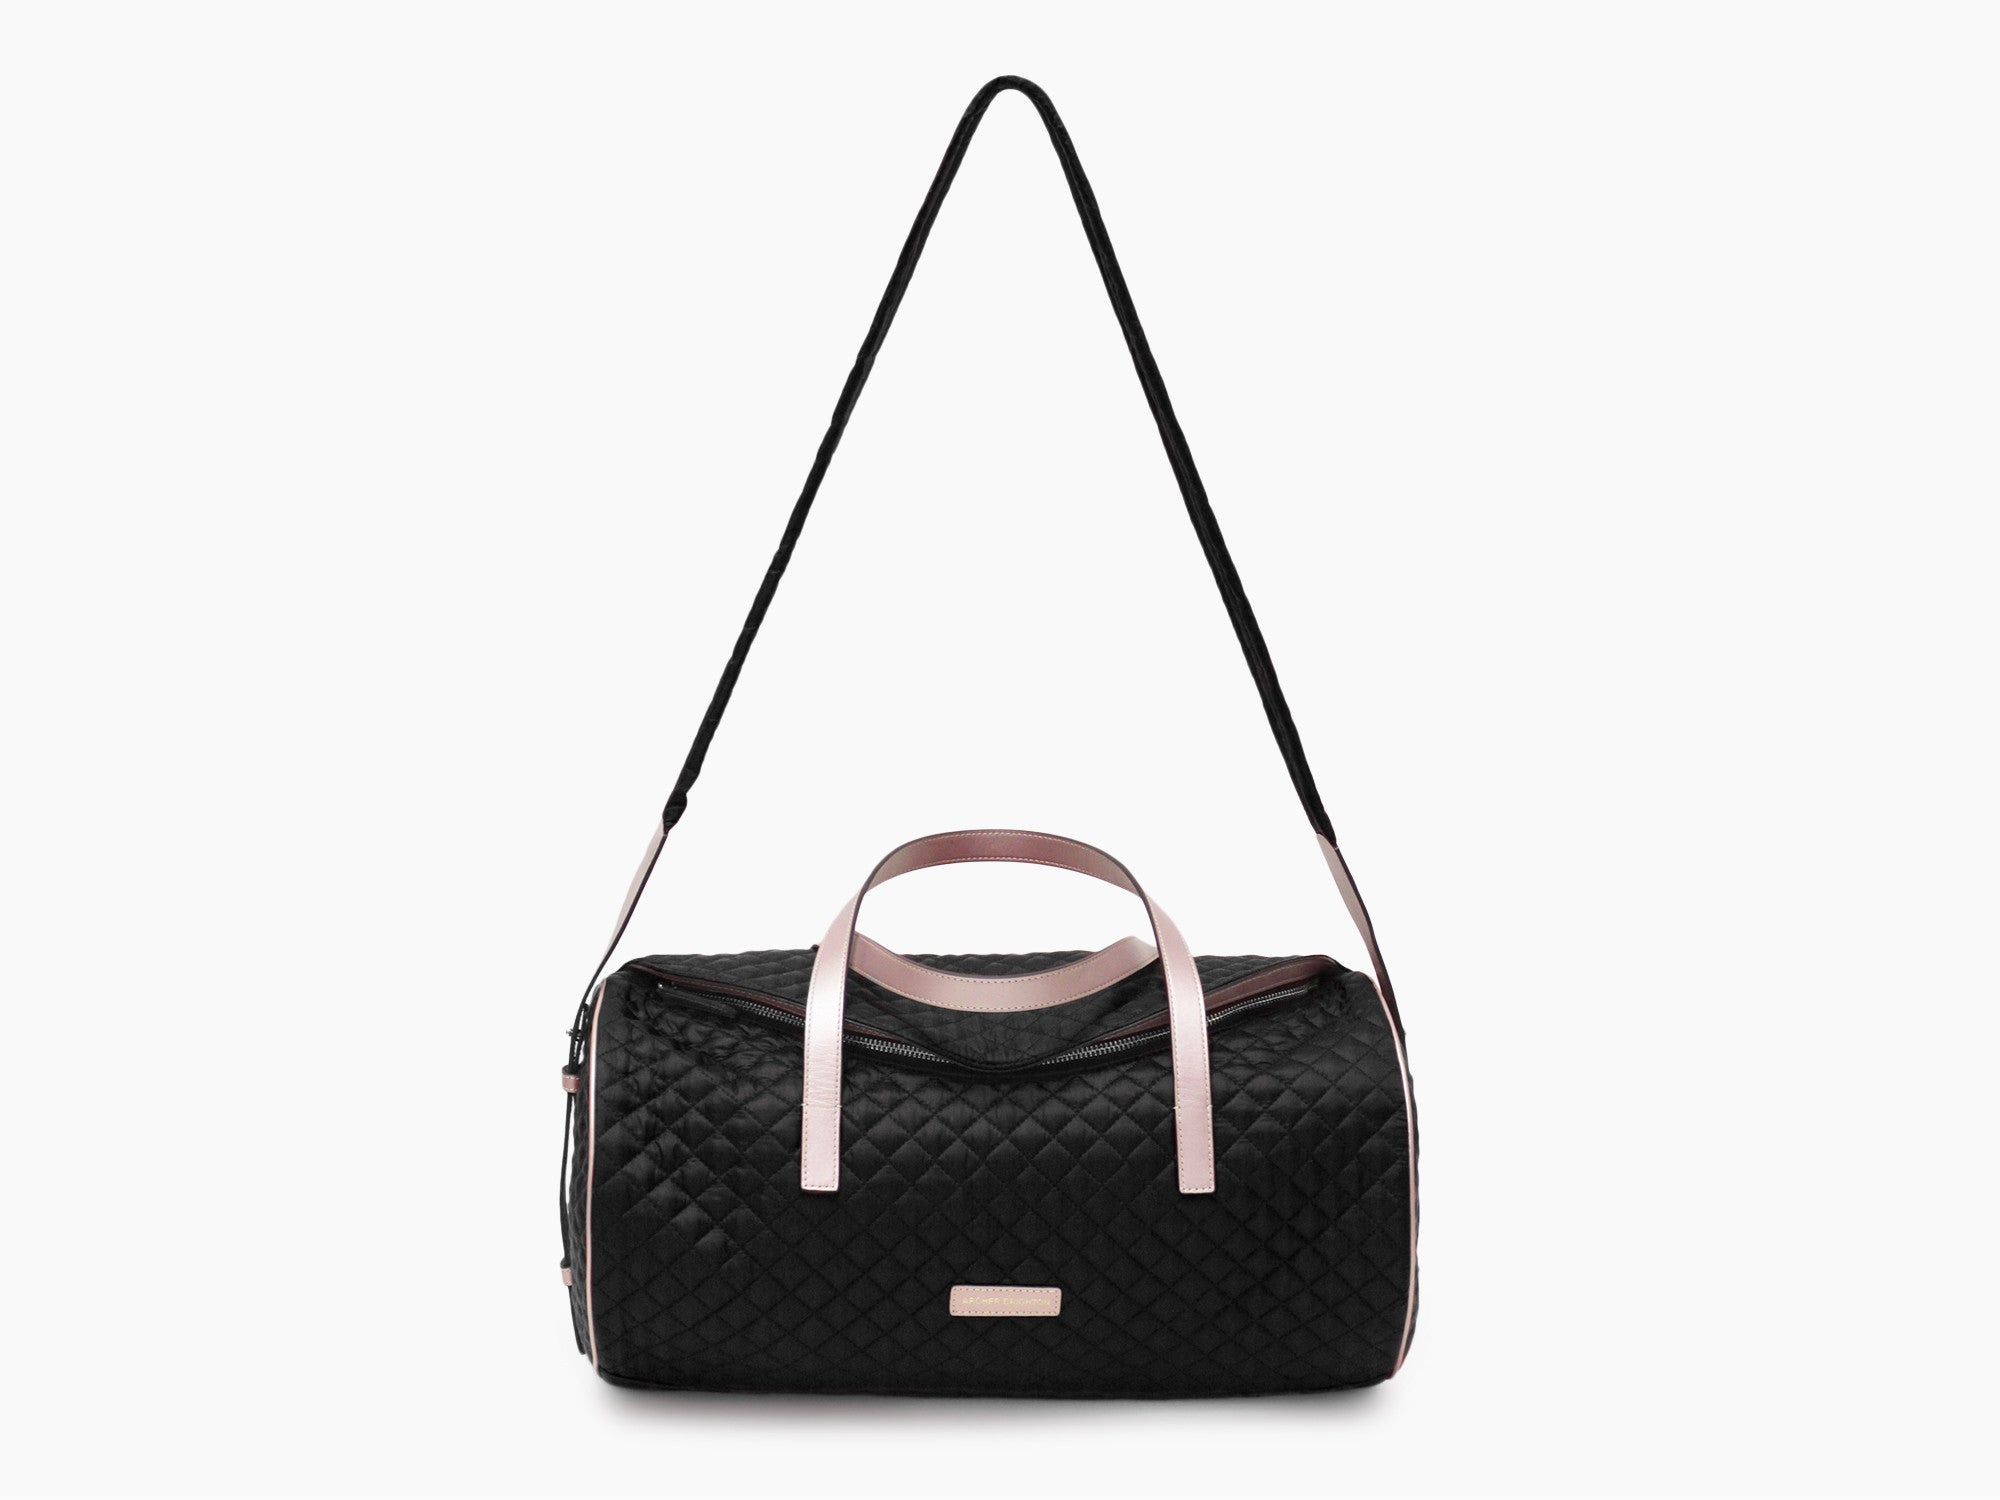 THE CHLOE CARRYALL DUFFEL